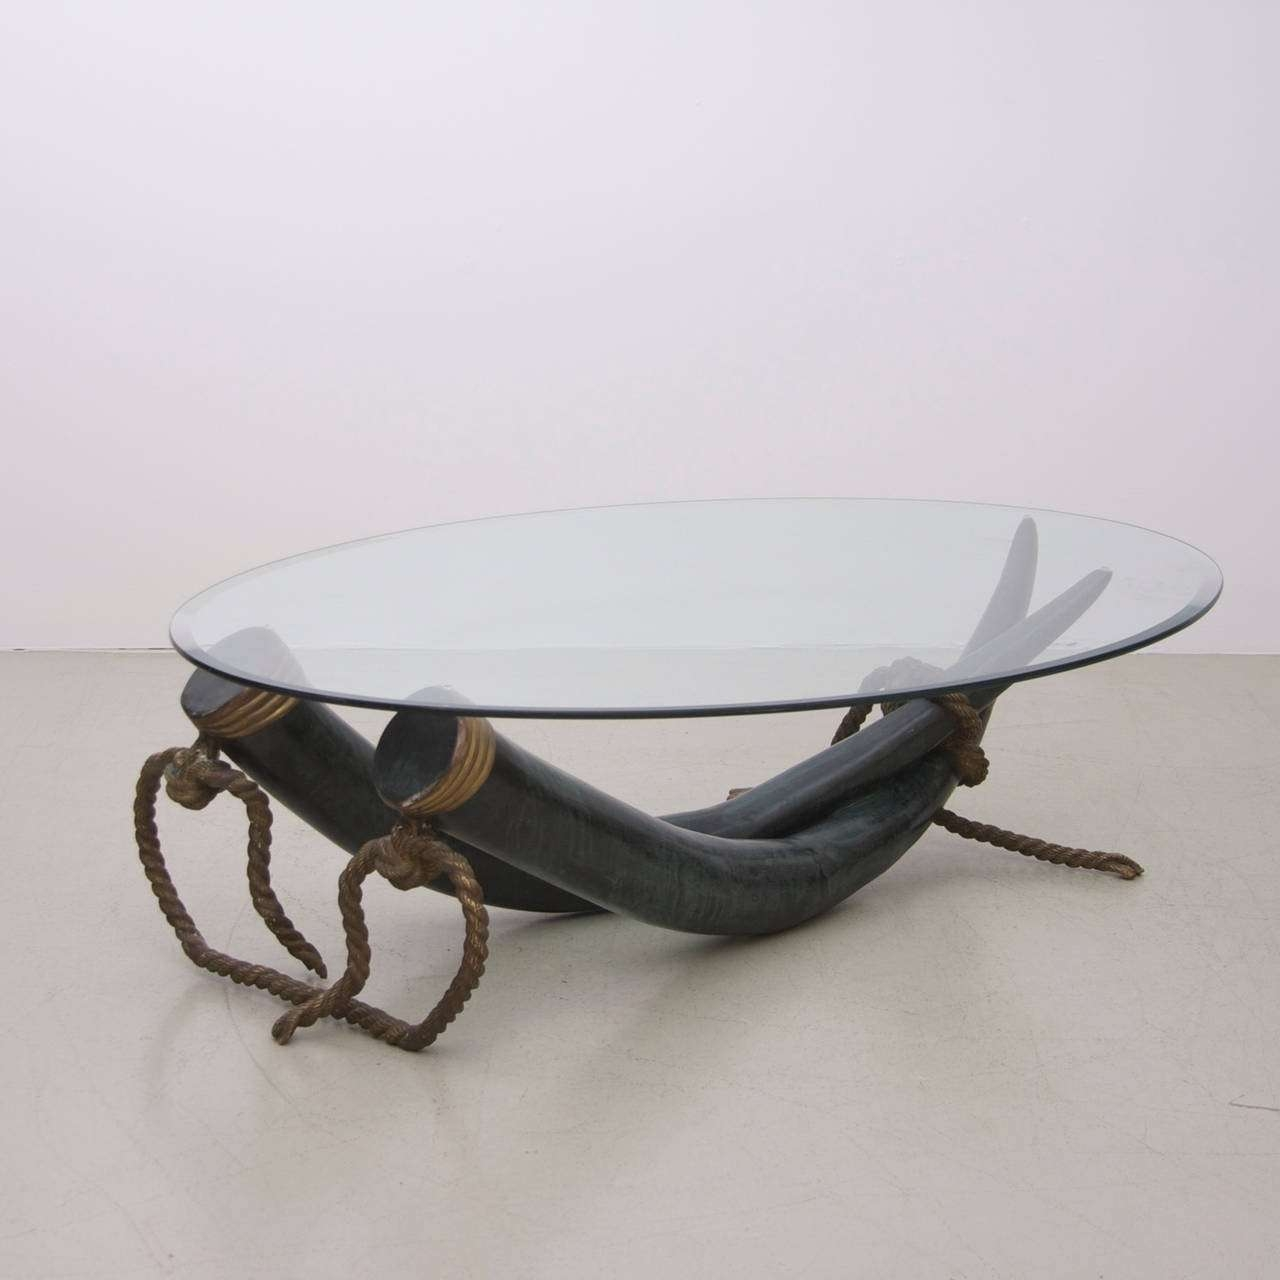 Famous Elephant Coffee Tables In Huge Bronze And Brass Elephant Tusk Coffee Tableitalo Valenti (View 4 of 20)